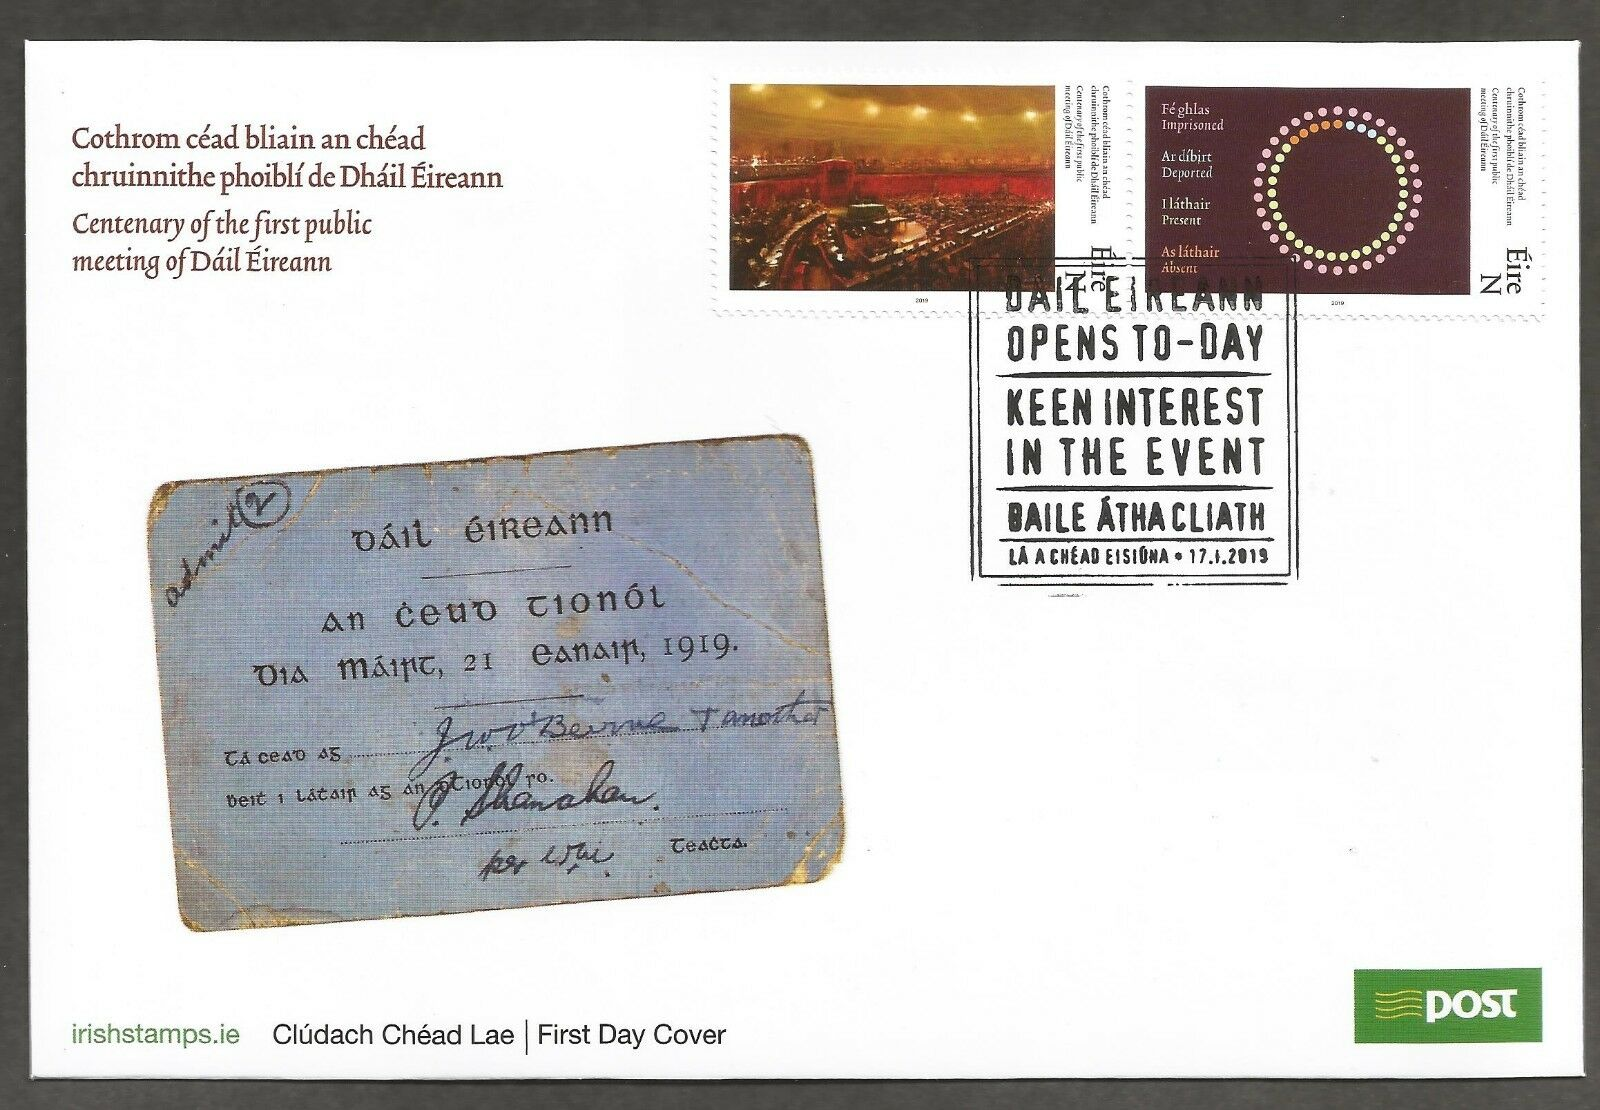 Ireland - 100th Anniversary of the 1st Public Meeting of Dáil Éireann / Lower House of the Irish Parliament (January 17, 2019) first day cover